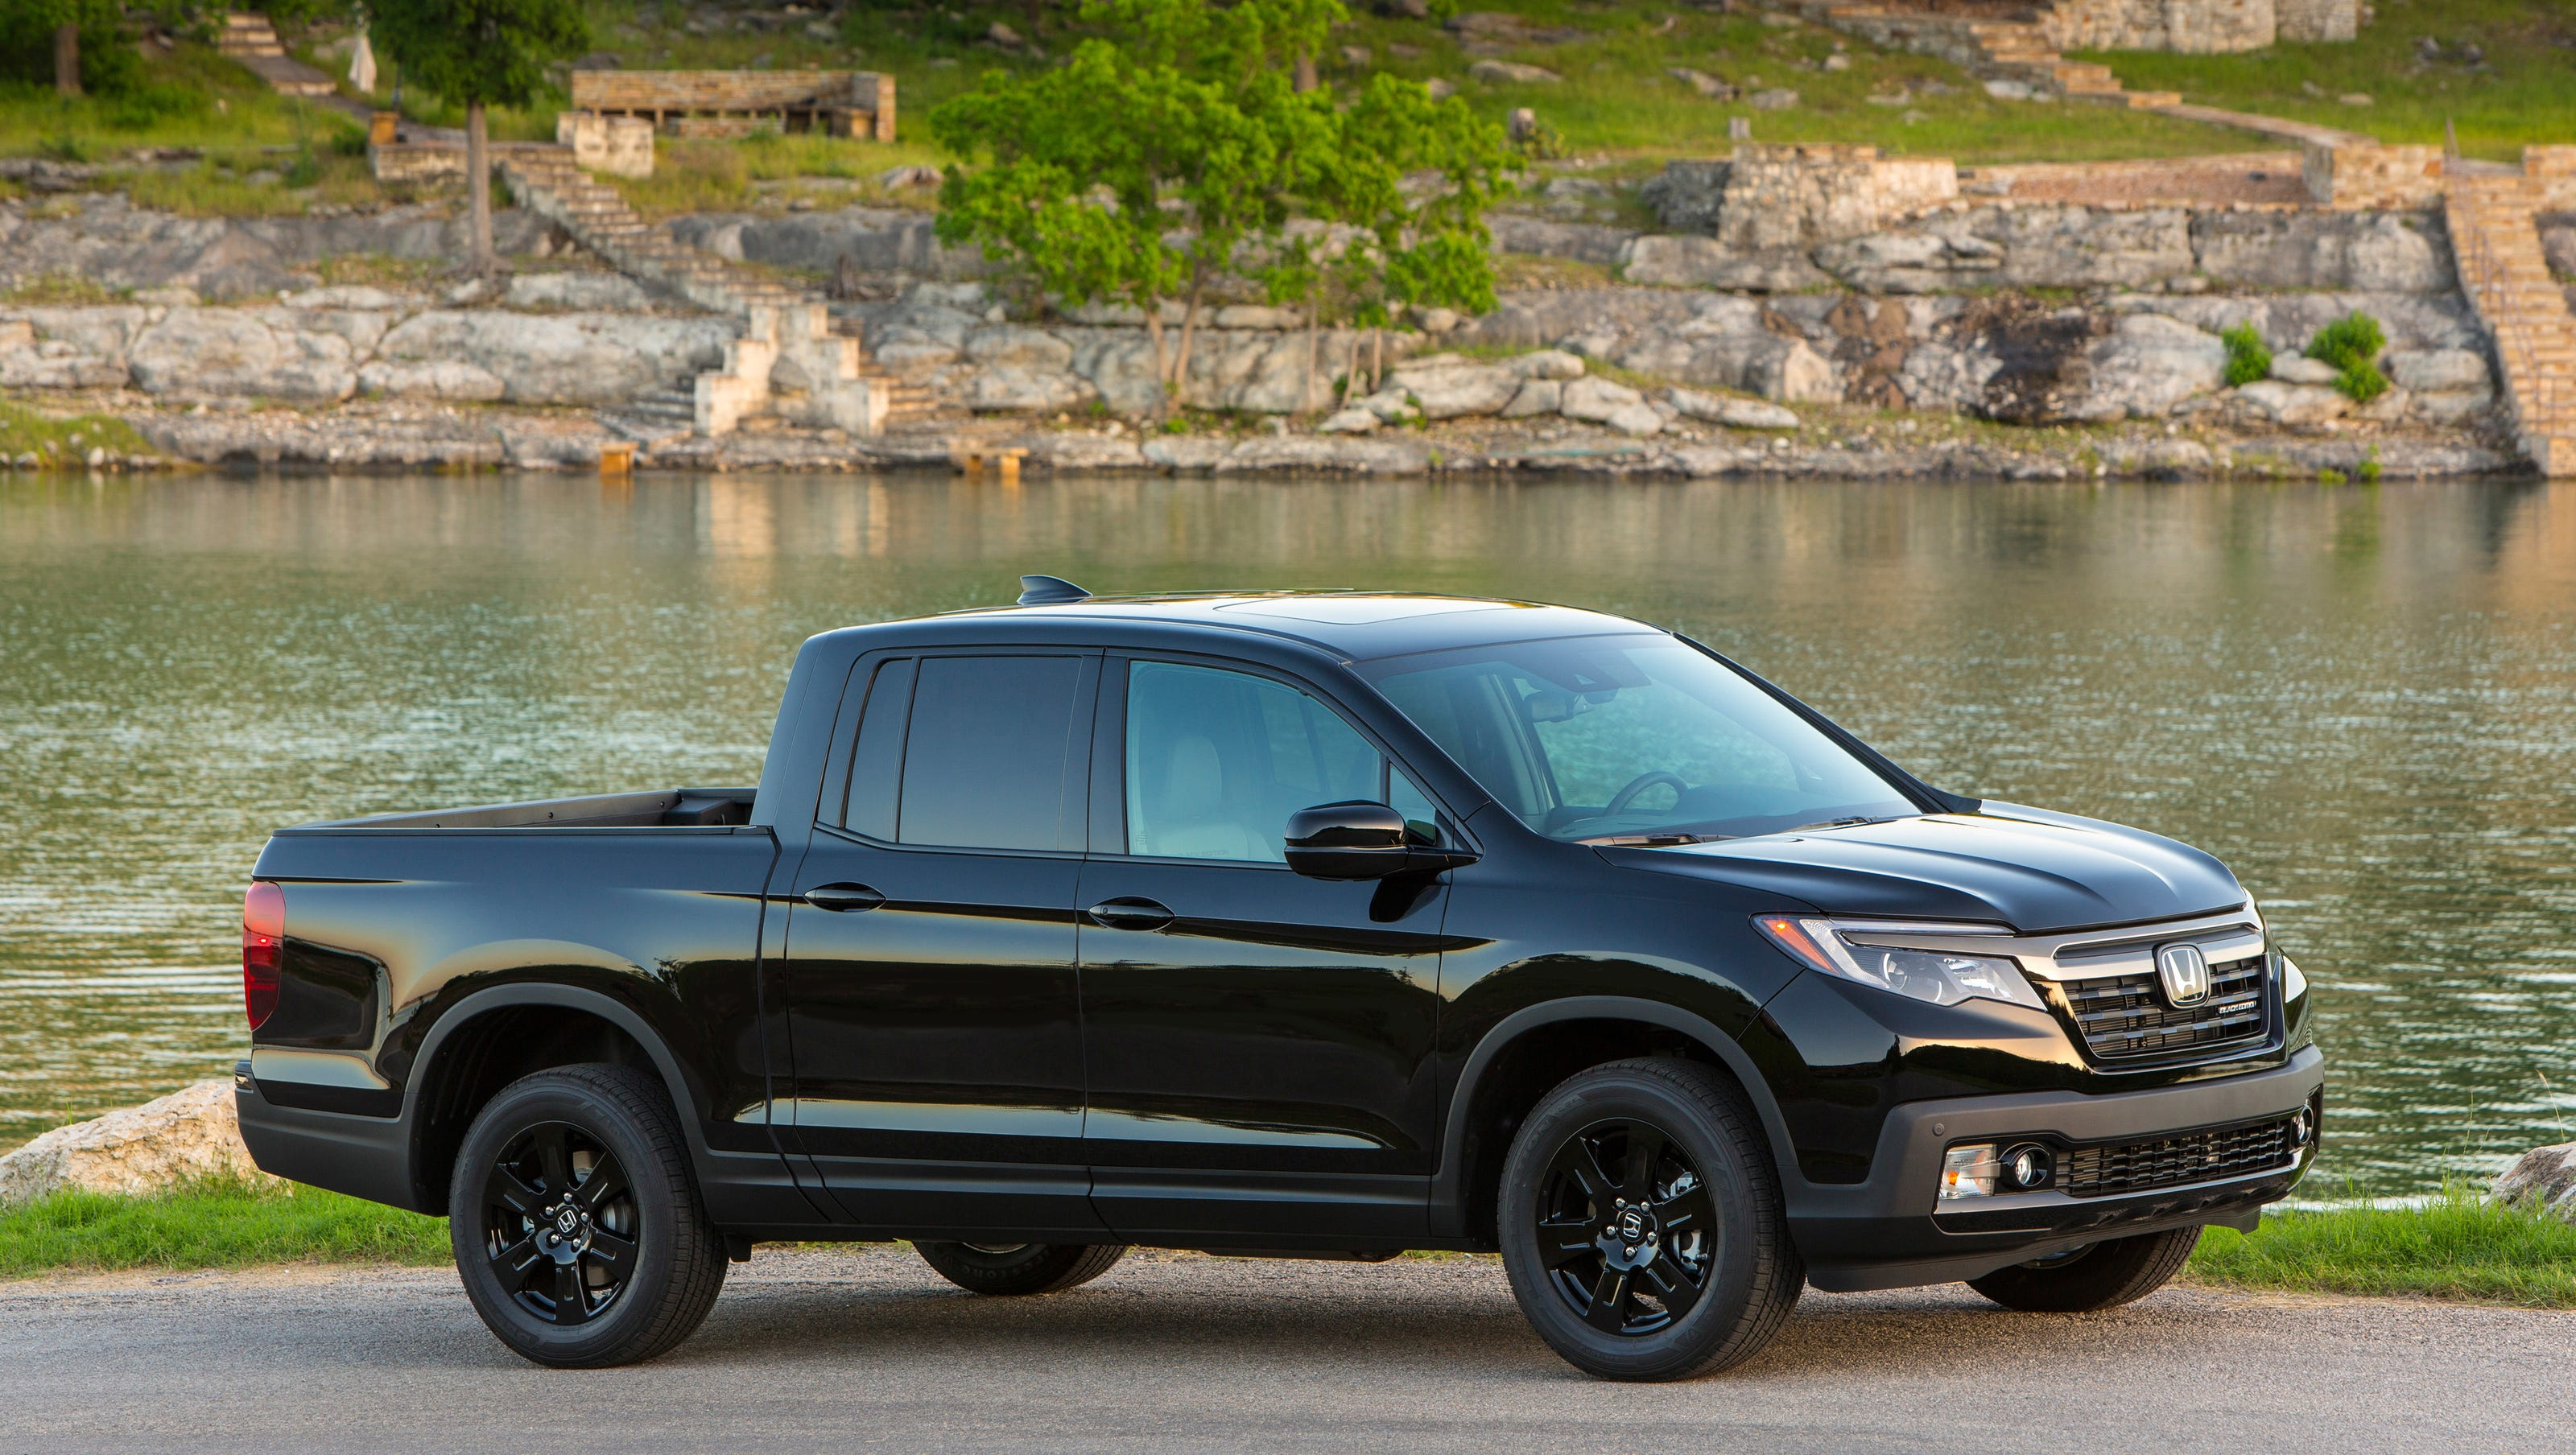 Tricked Out Ridgeline Comes Party Ready With Bed Audio